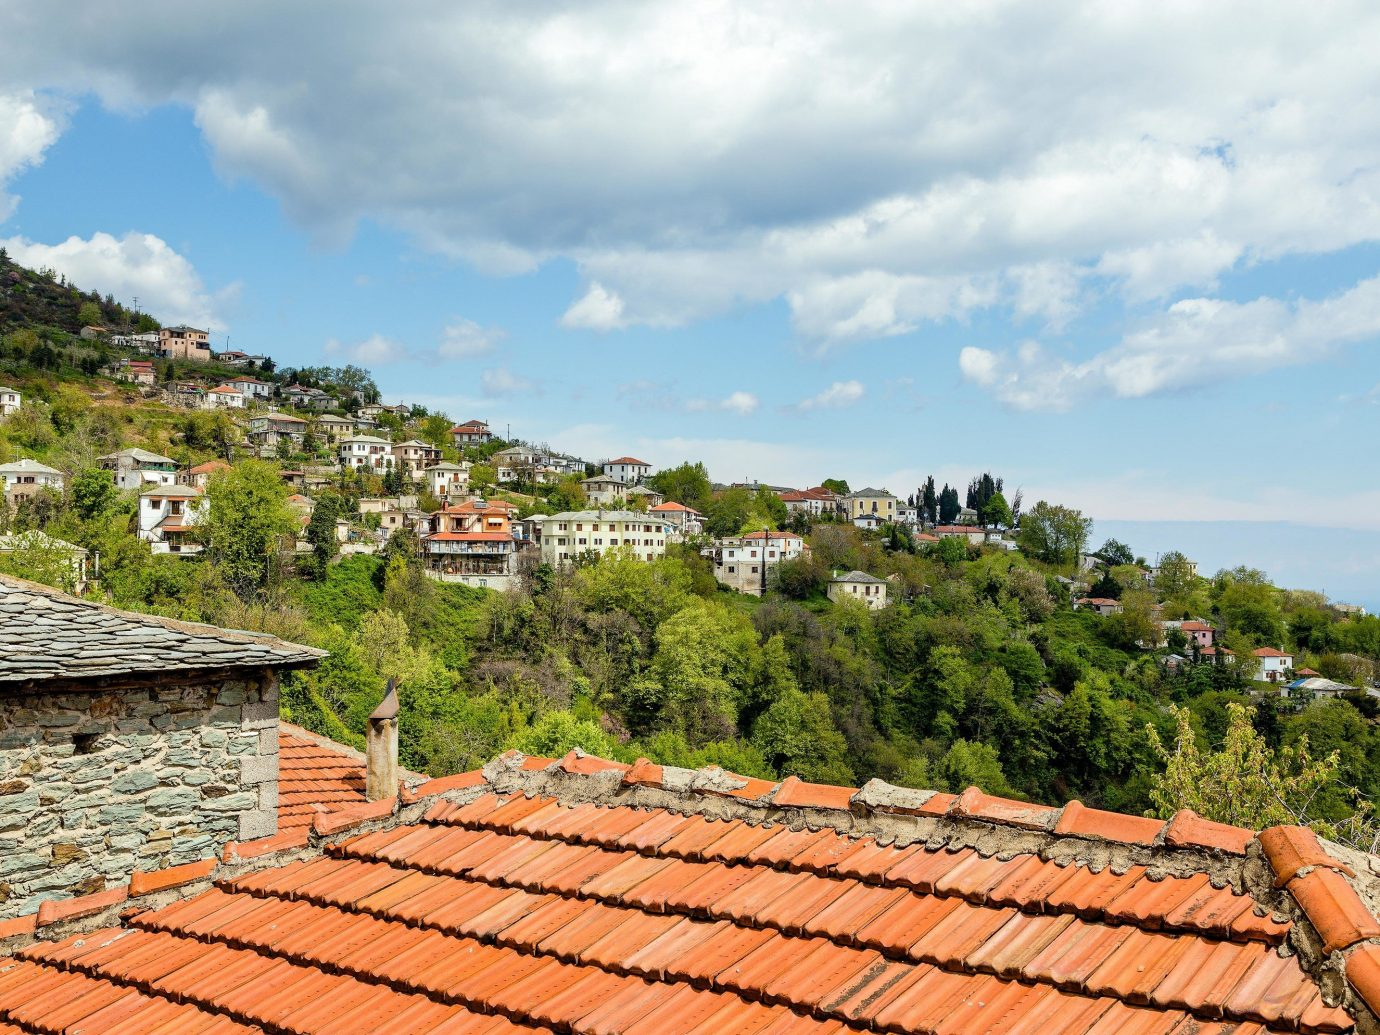 europe Outdoors + Adventure Trip Ideas roof sky historic site Village outdoor structure cloud hill station real estate house tree mountain tourism